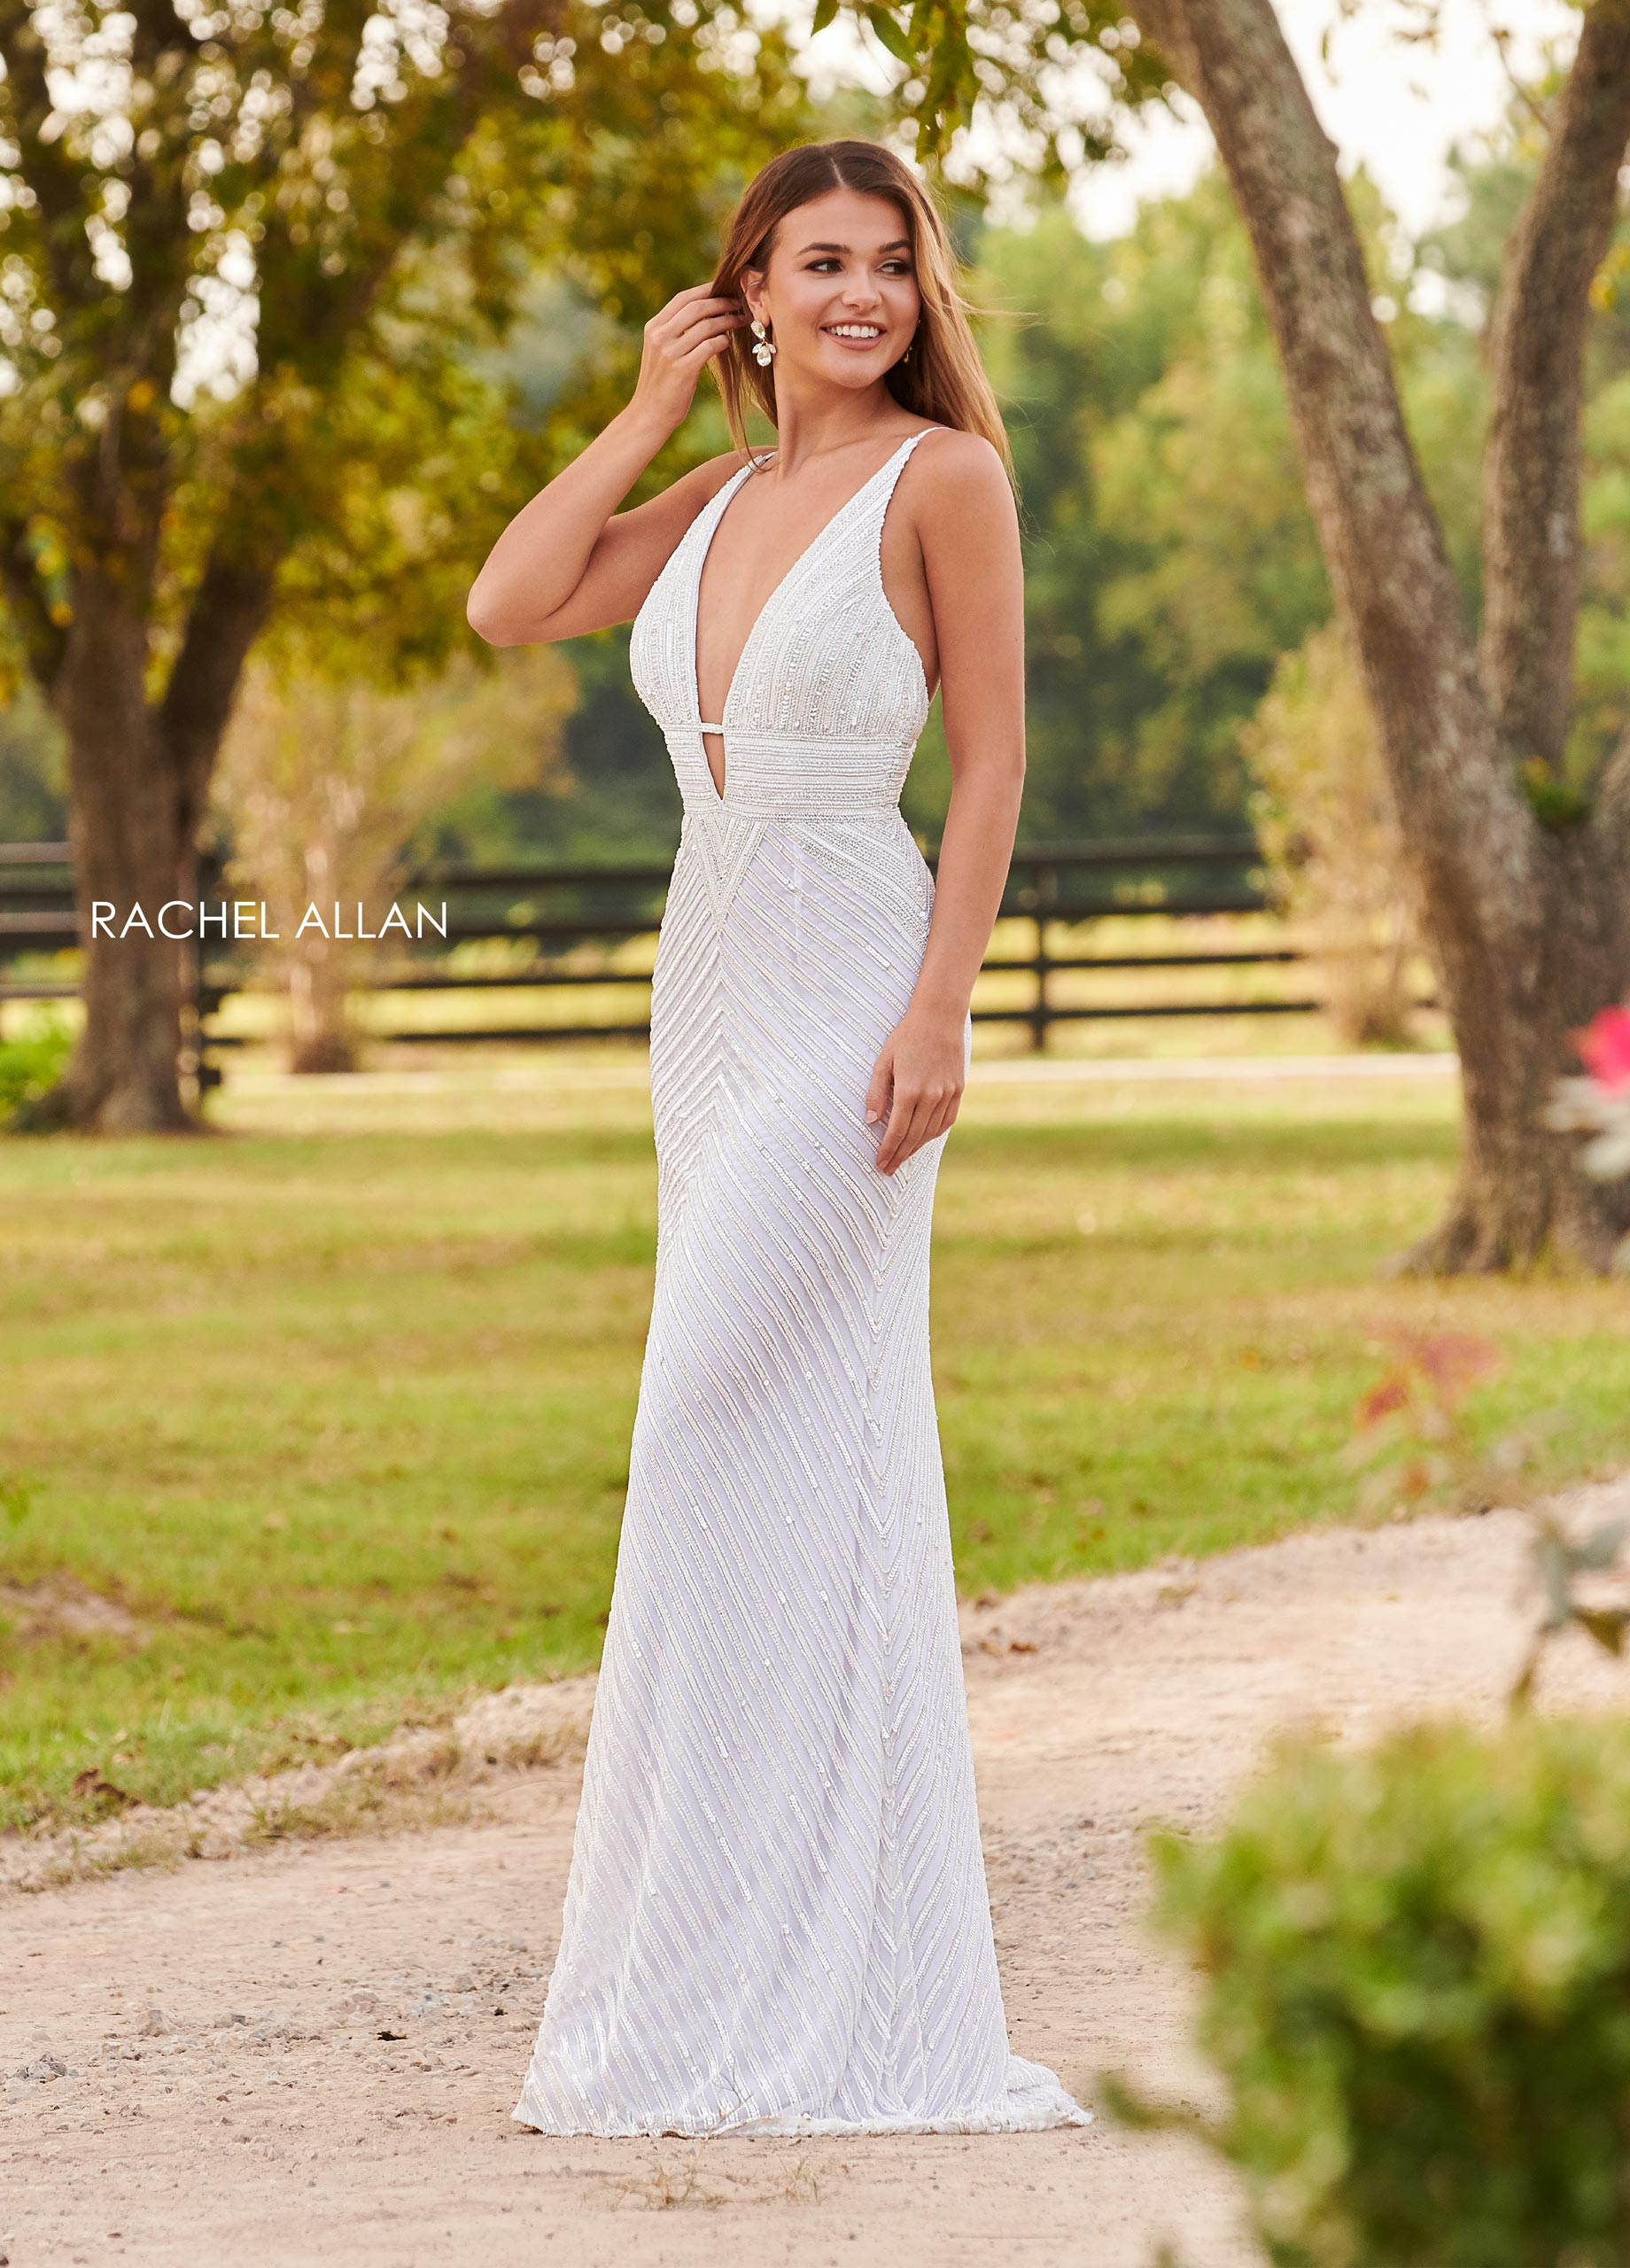 V-Neck Fitted Long Prom Dresses in White Color